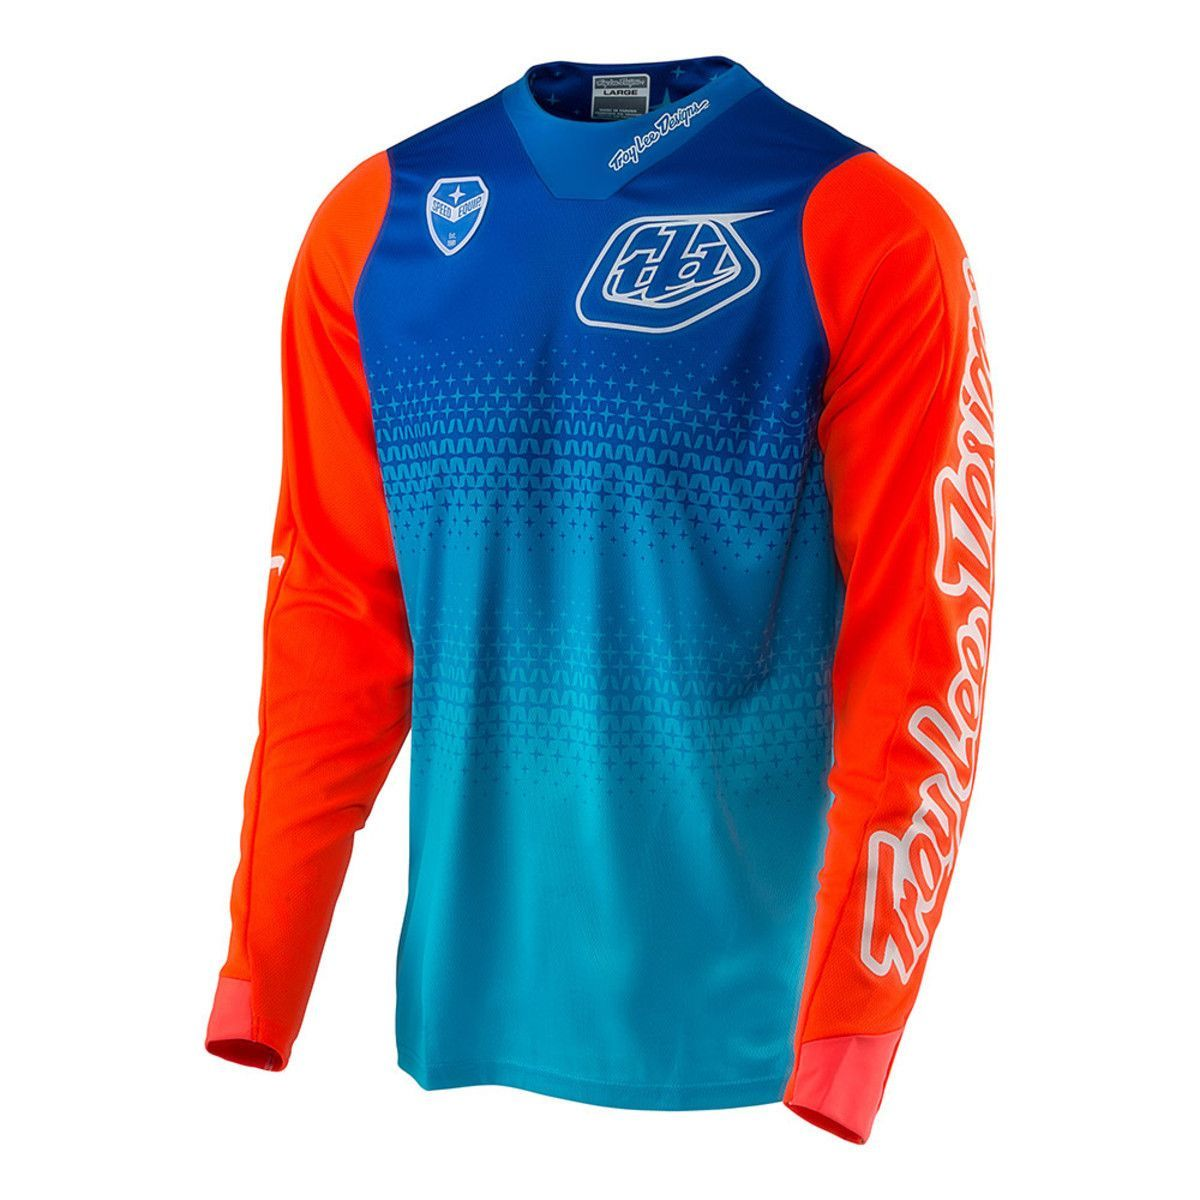 Blue And Red Long Sleeve Mtb Jersey Sport Shirt Design Outdoor